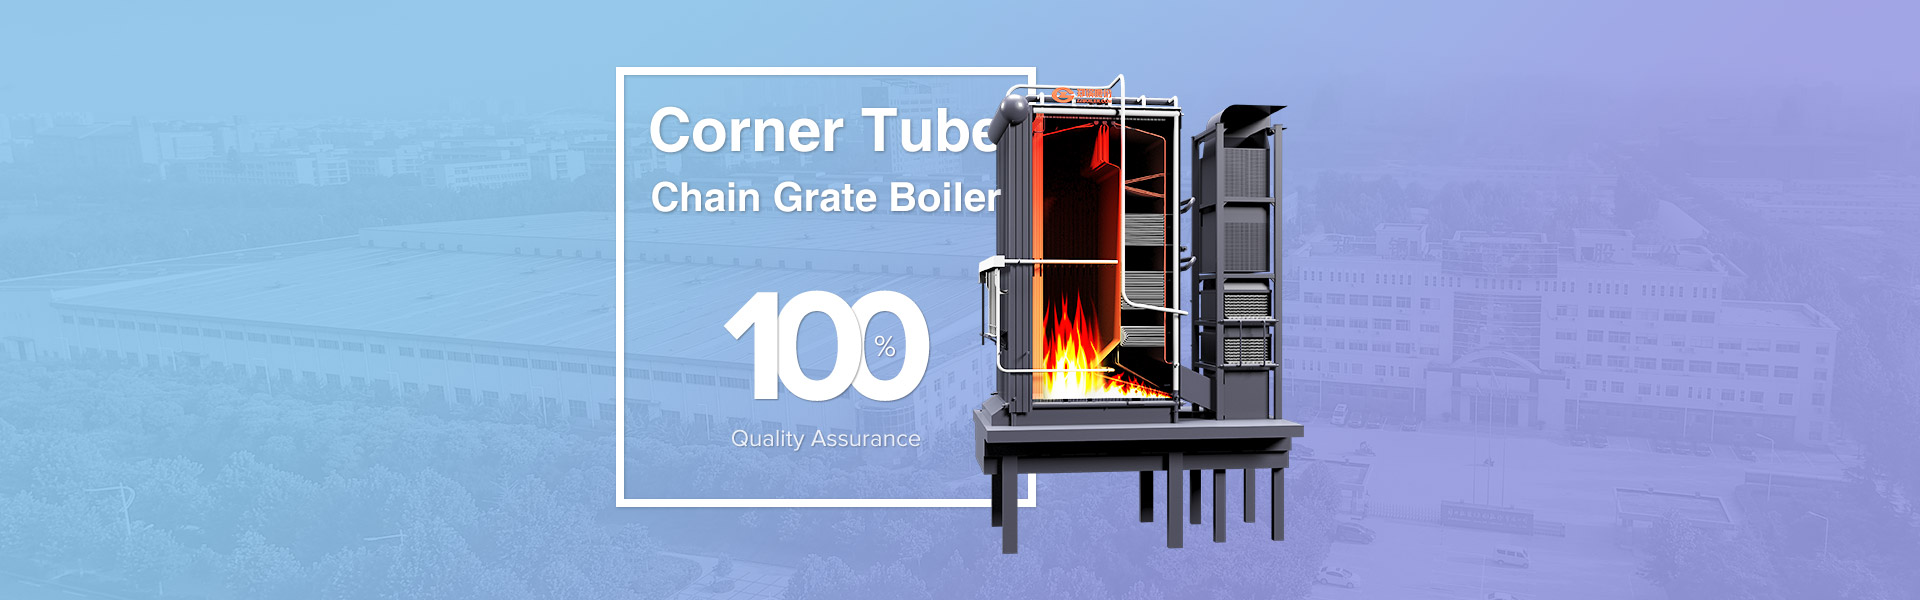 biomass fired chain grate boiler